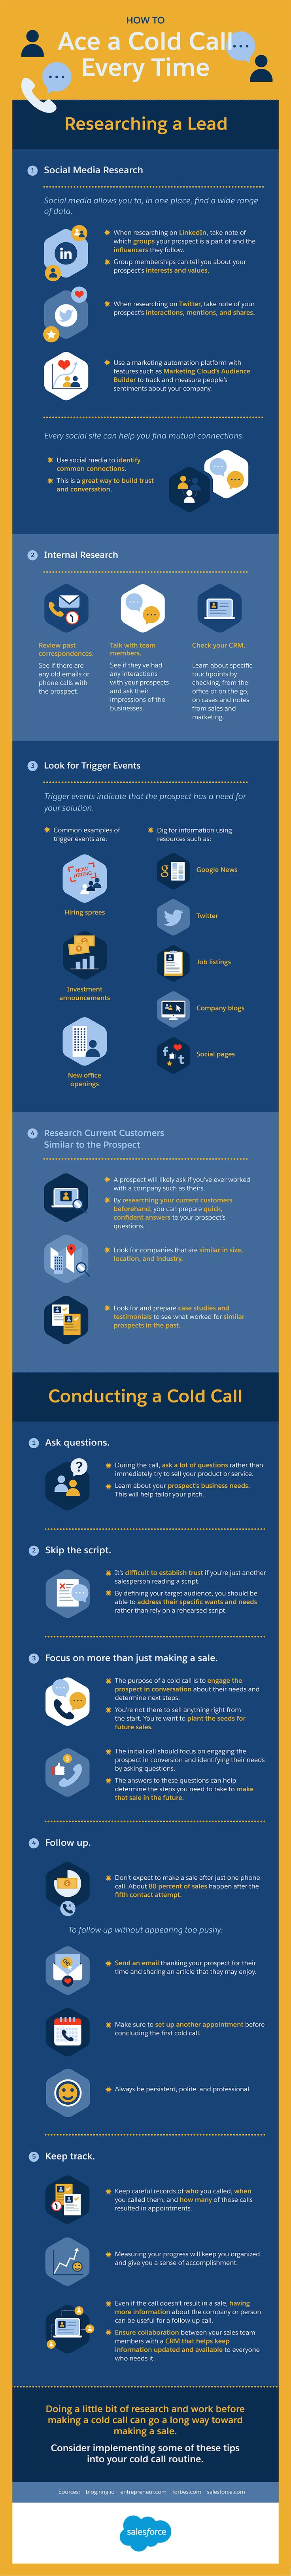 How to Ace a Cold Call Every Time #Infographic #HowTo #Sales